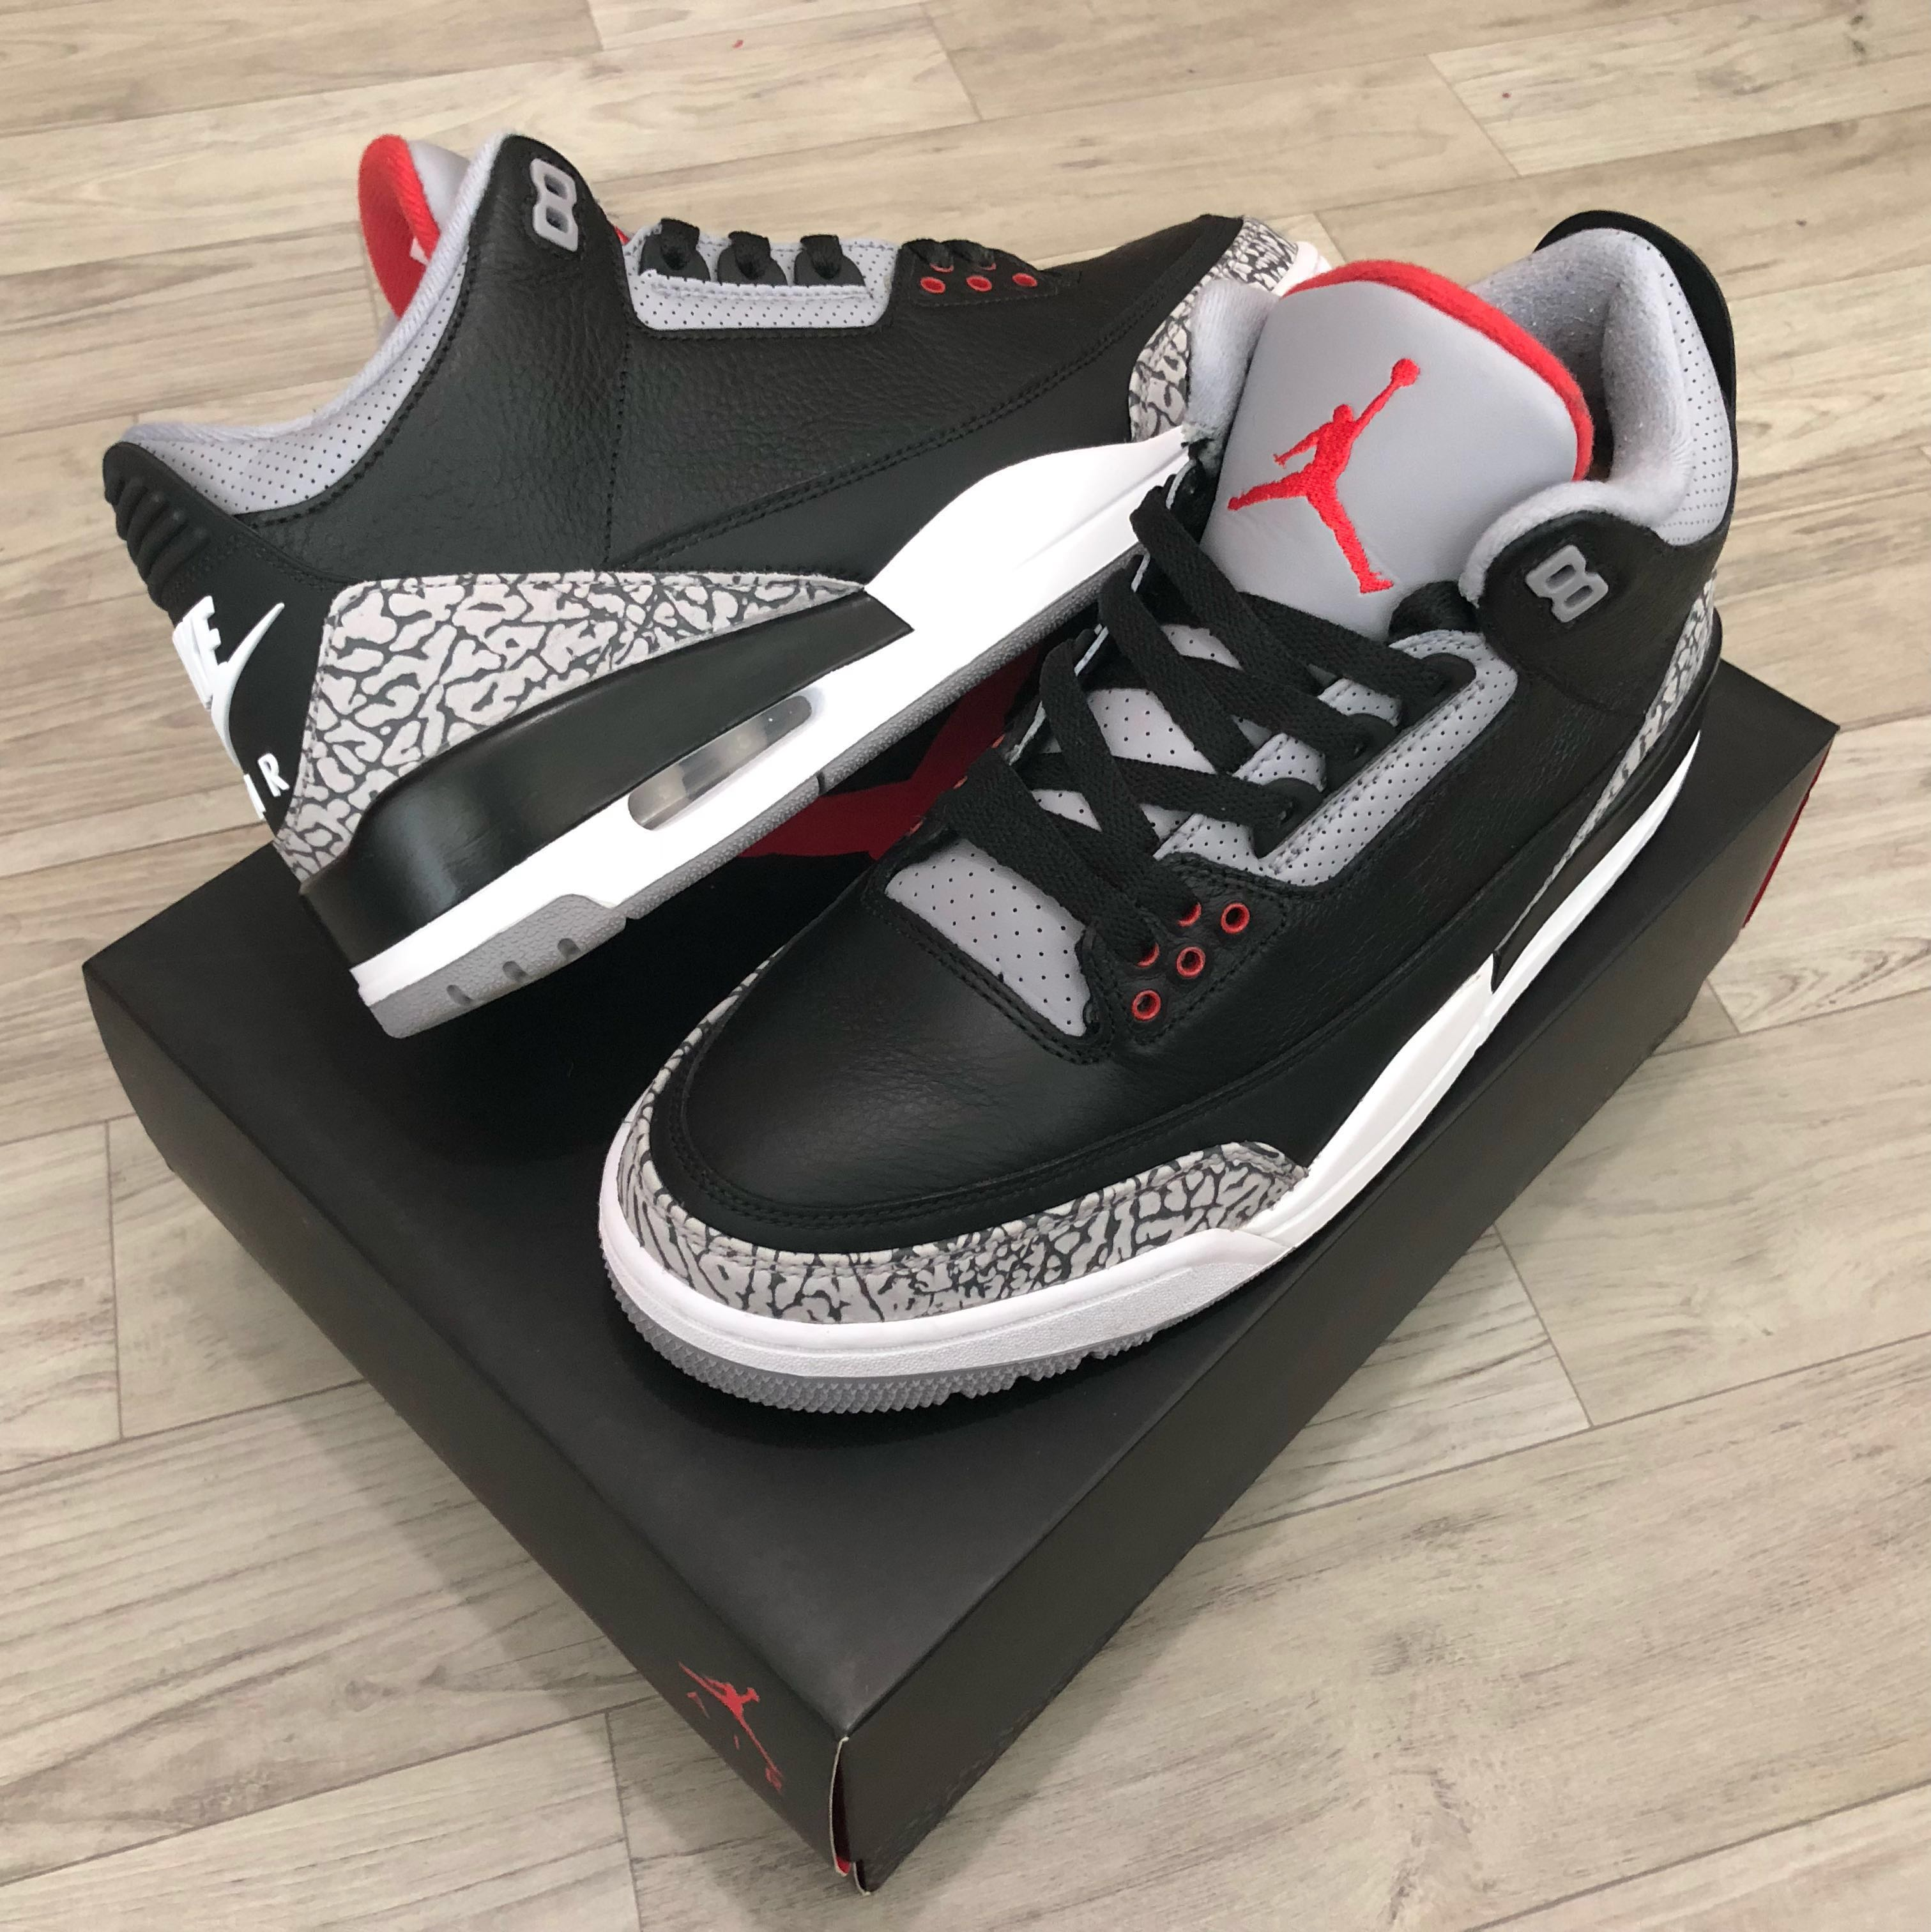 the best attitude df745 cc623 100% Authentic Nike Air Jordan III 3 Black Cement 2018 Retro size 9.5 US,  Men s Fashion, Footwear, Sneakers on Carousell